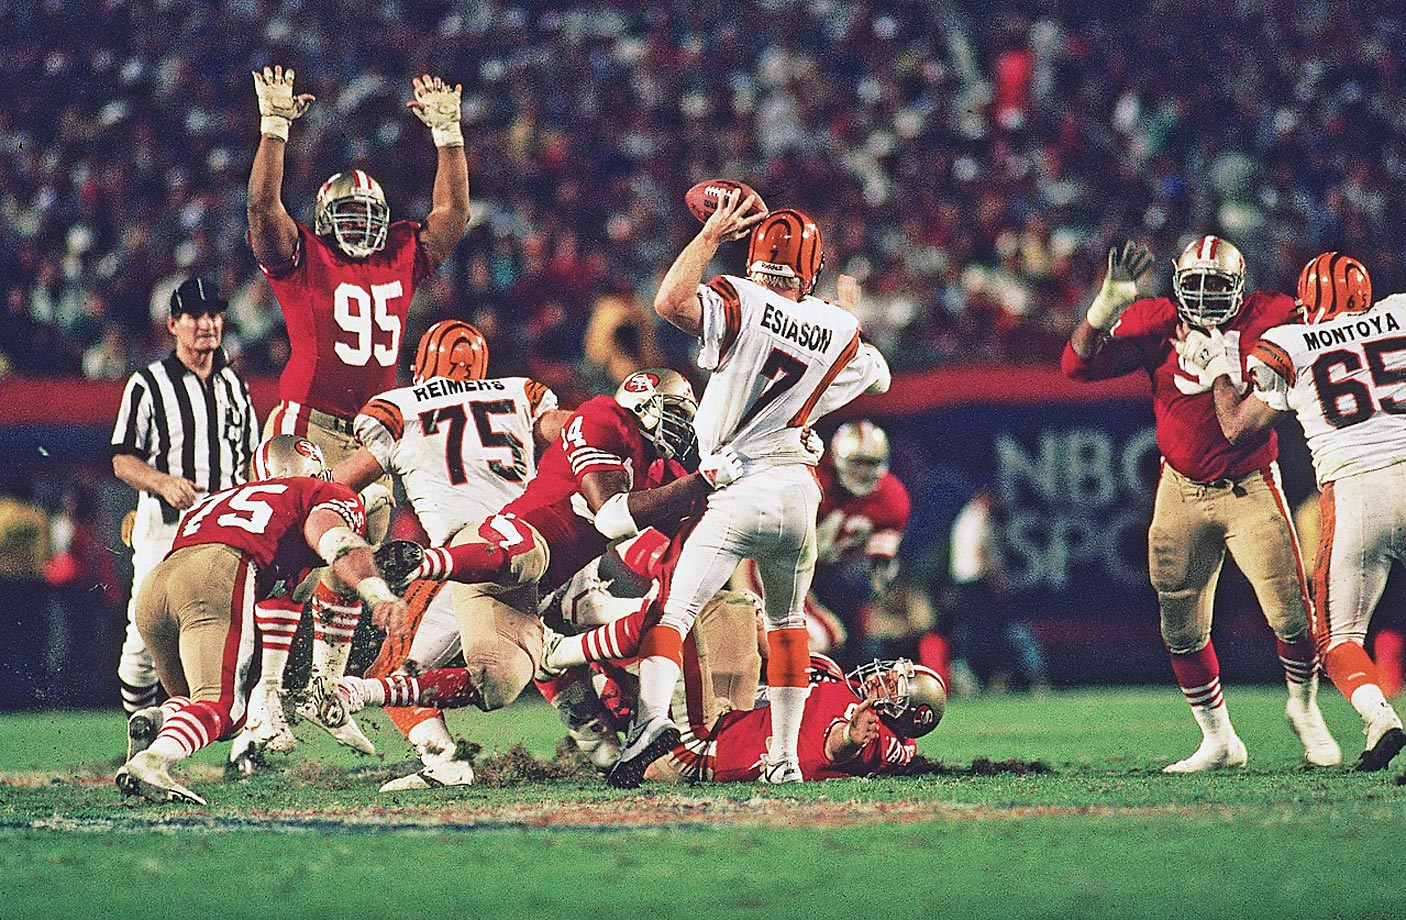 Michael Carter attempts to pull down Cincinnati quarterback Boomer Esiason in Super Bowl XXIII in January 1989.